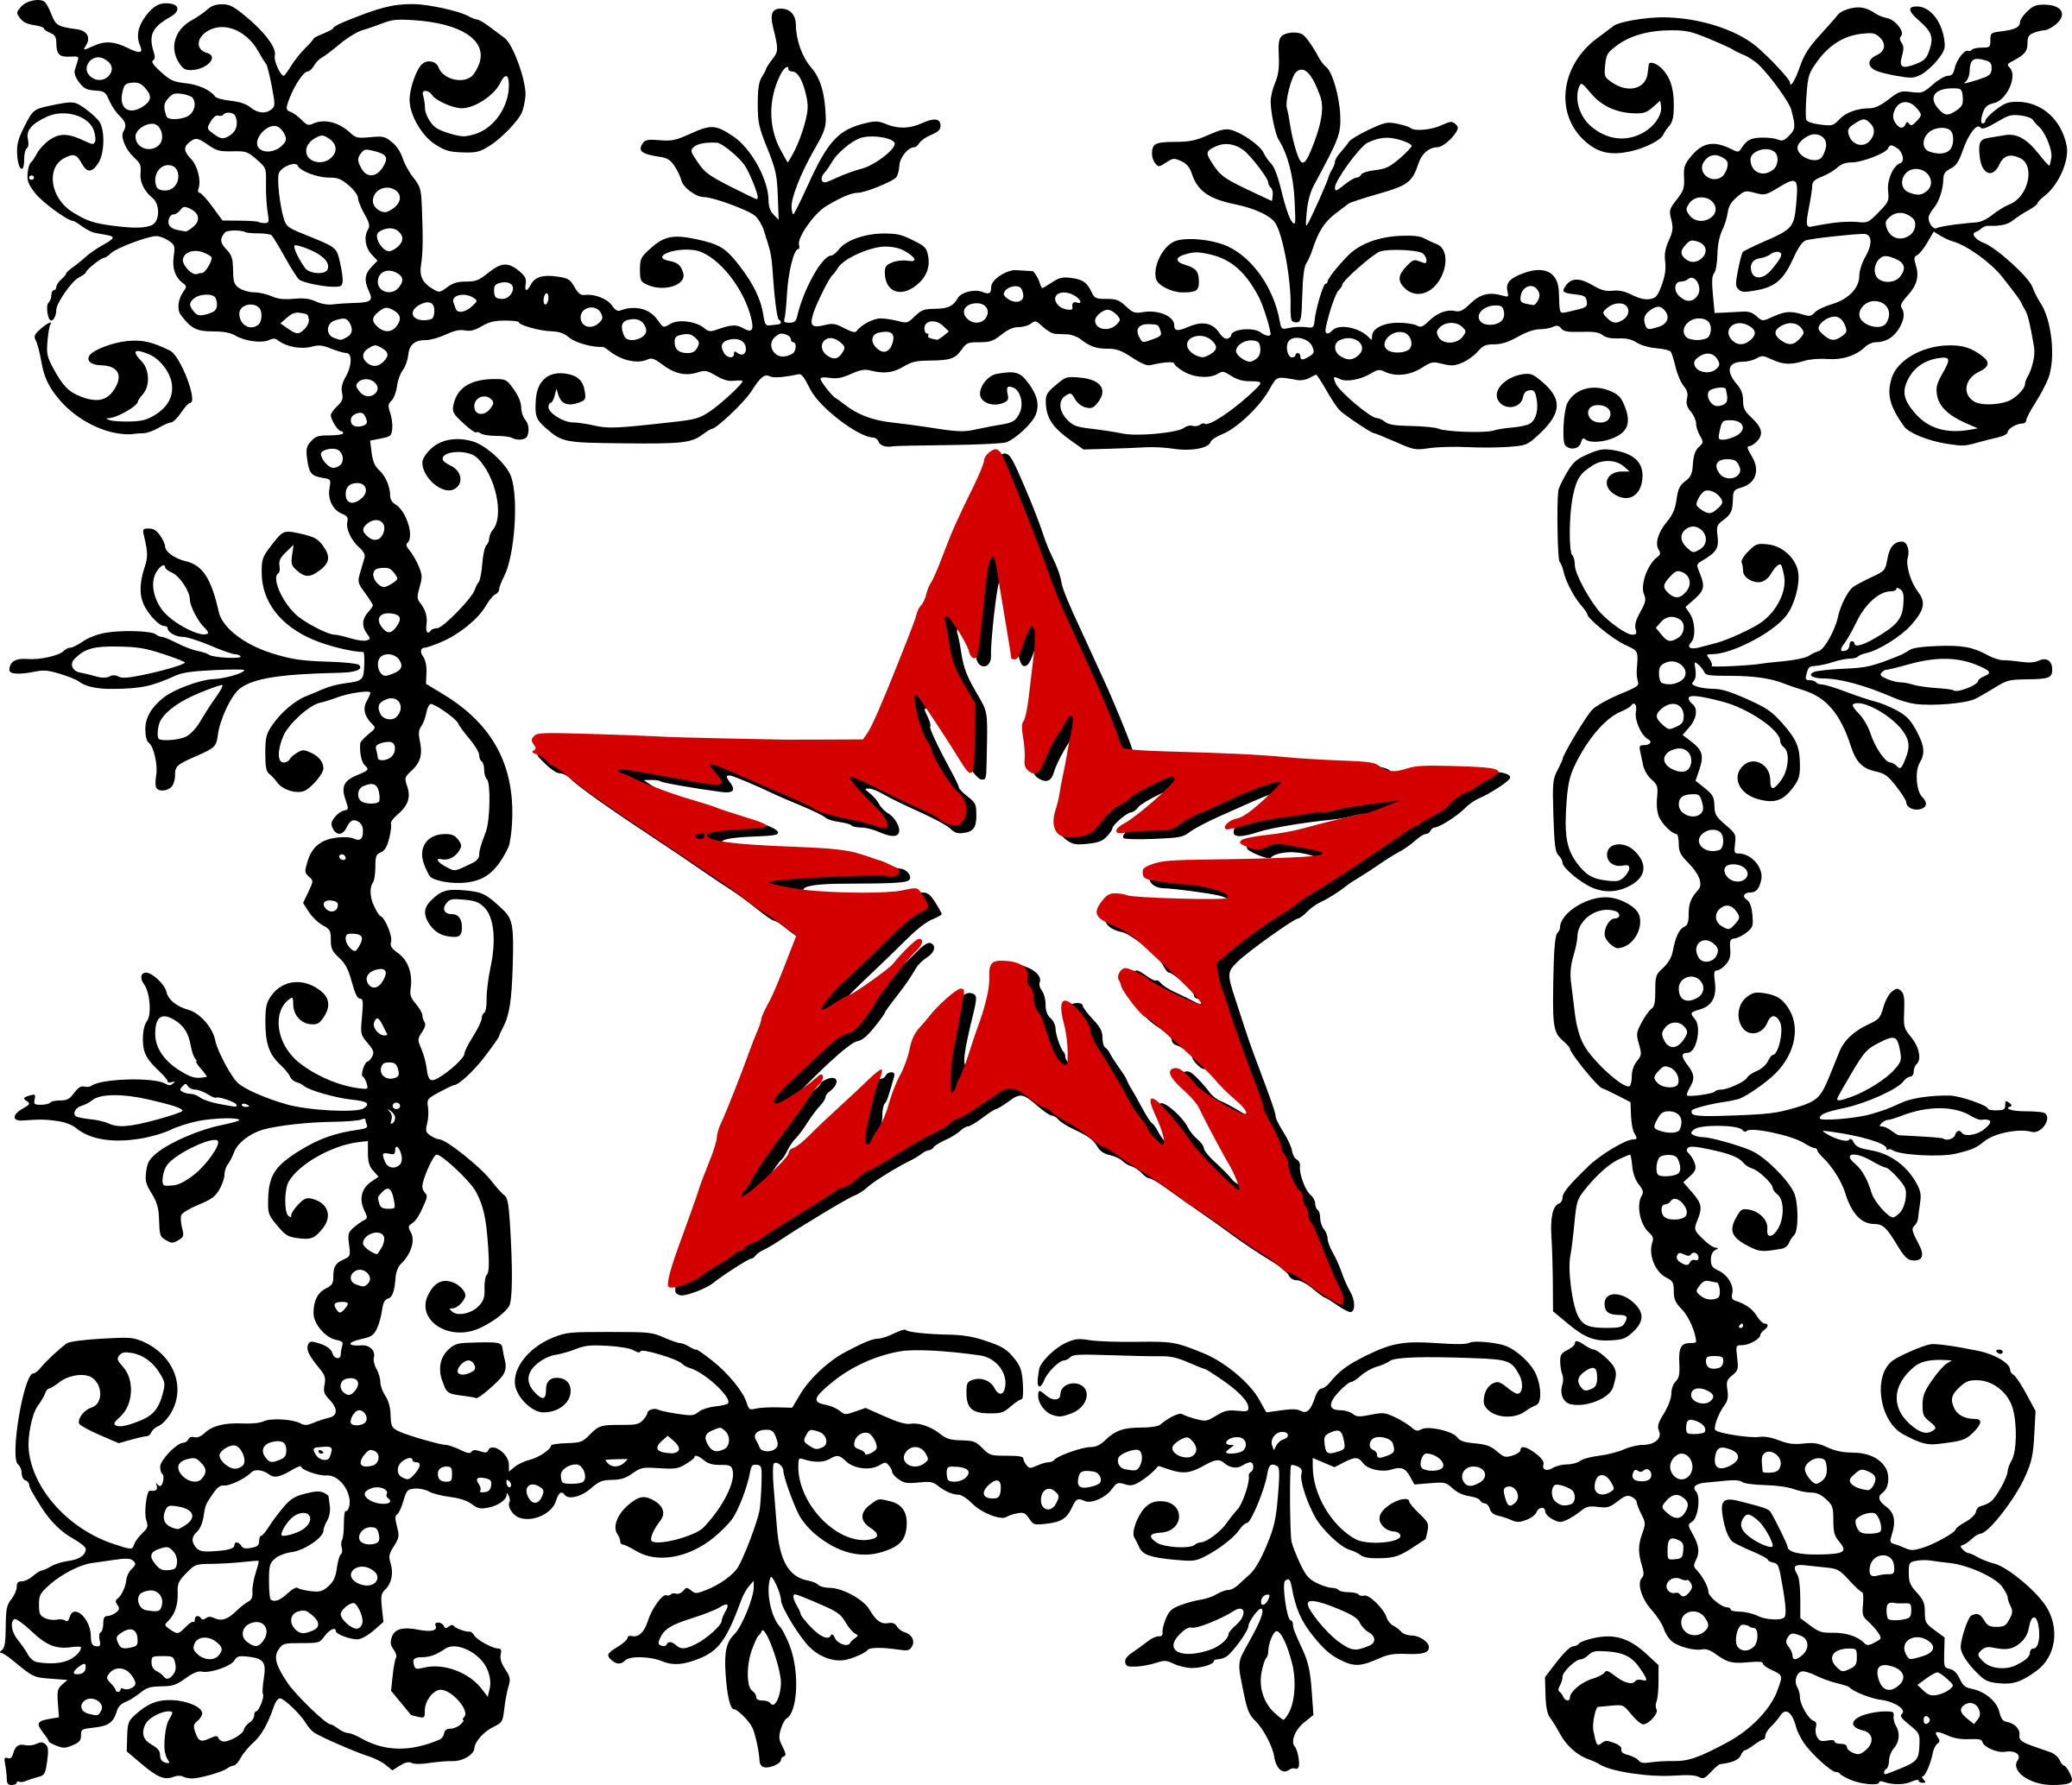 Decorative Red Star by j4p4n